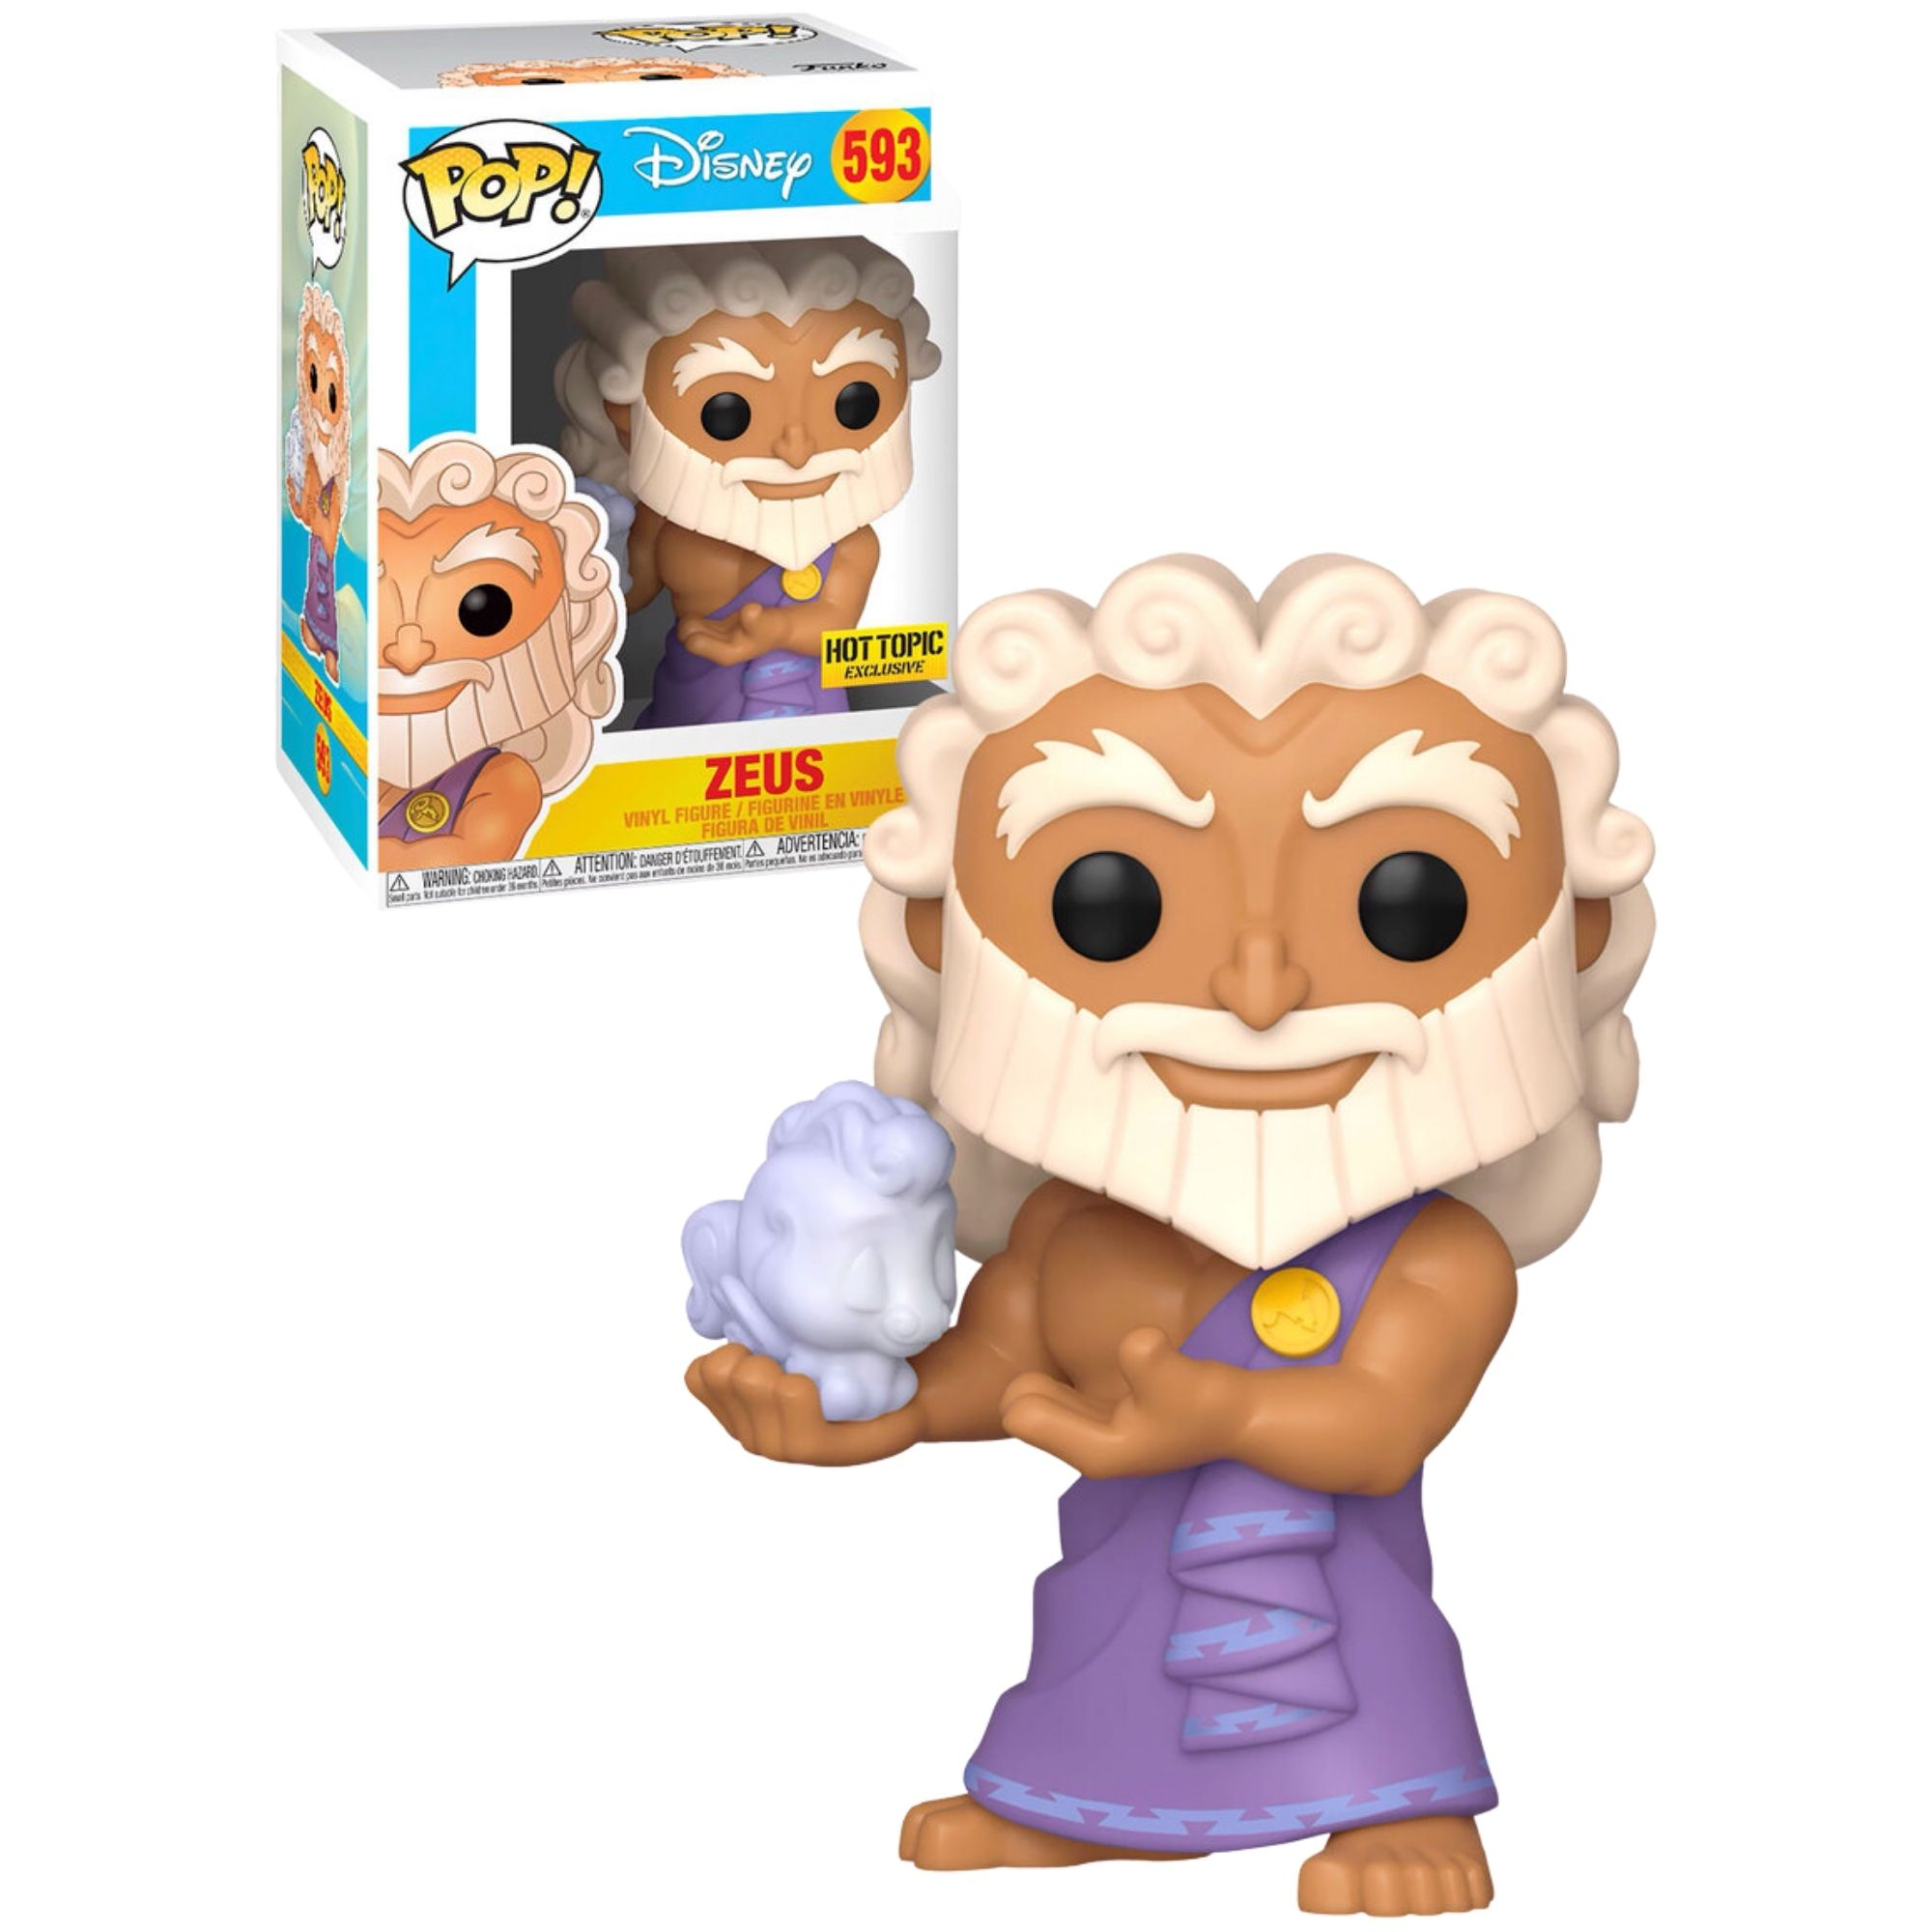 Boneco Funko Pop Disney Zeus Hot Topic #593 - Game Land Brinquedos